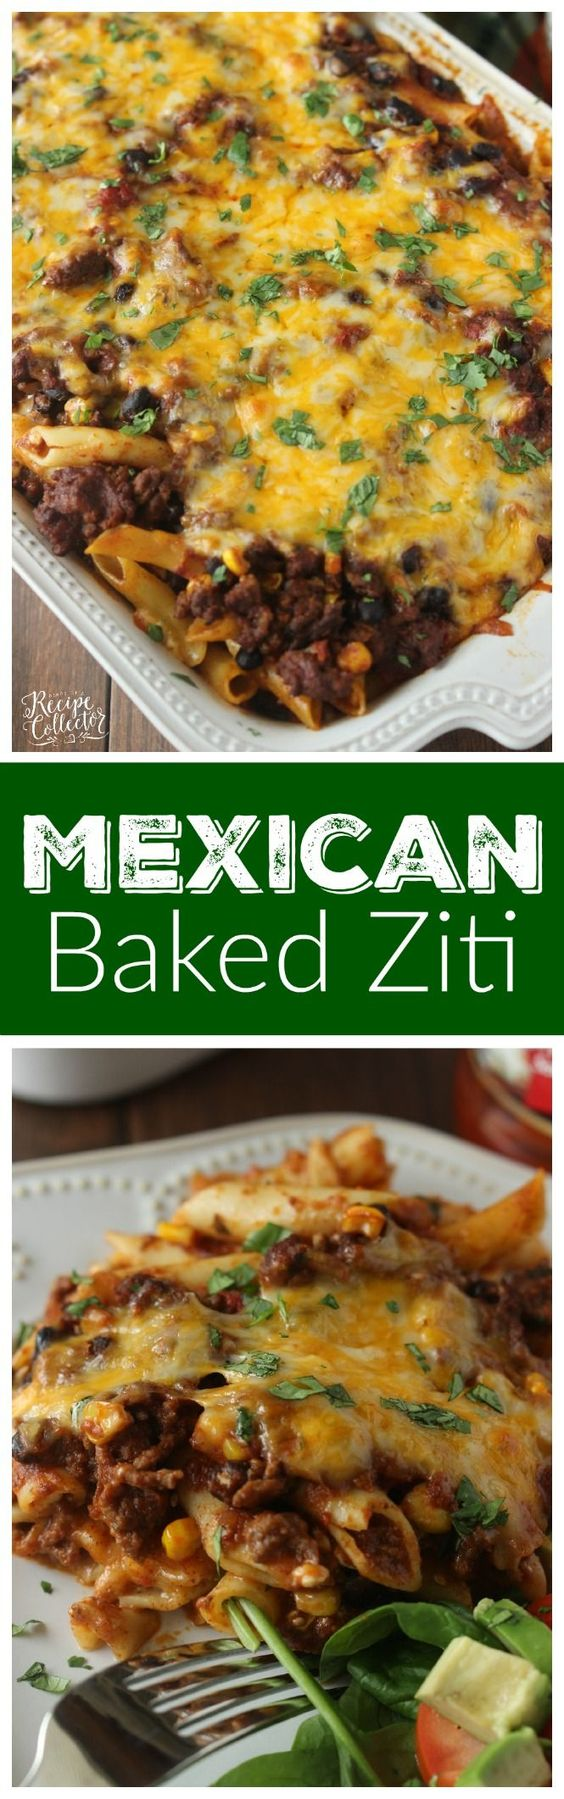 Mexican Baked Ziti - A comforting casserole filled with pasta, ground ...